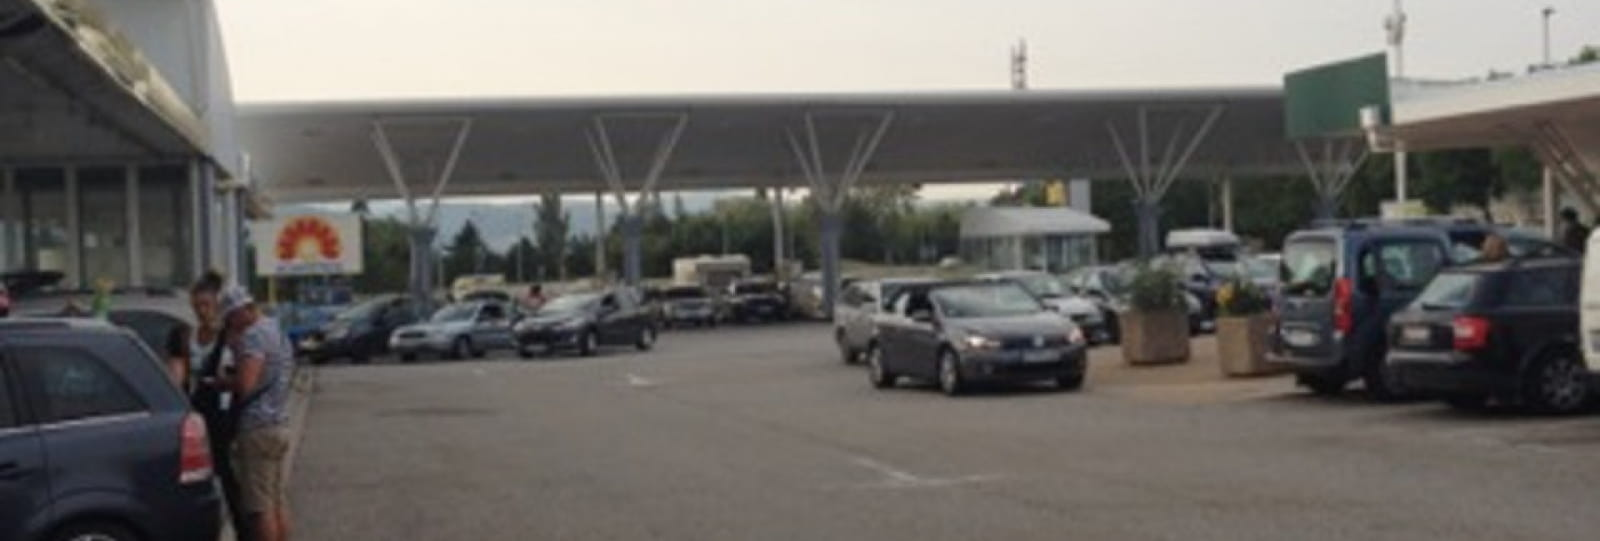 Aire Camping-Cars A7 Saulce